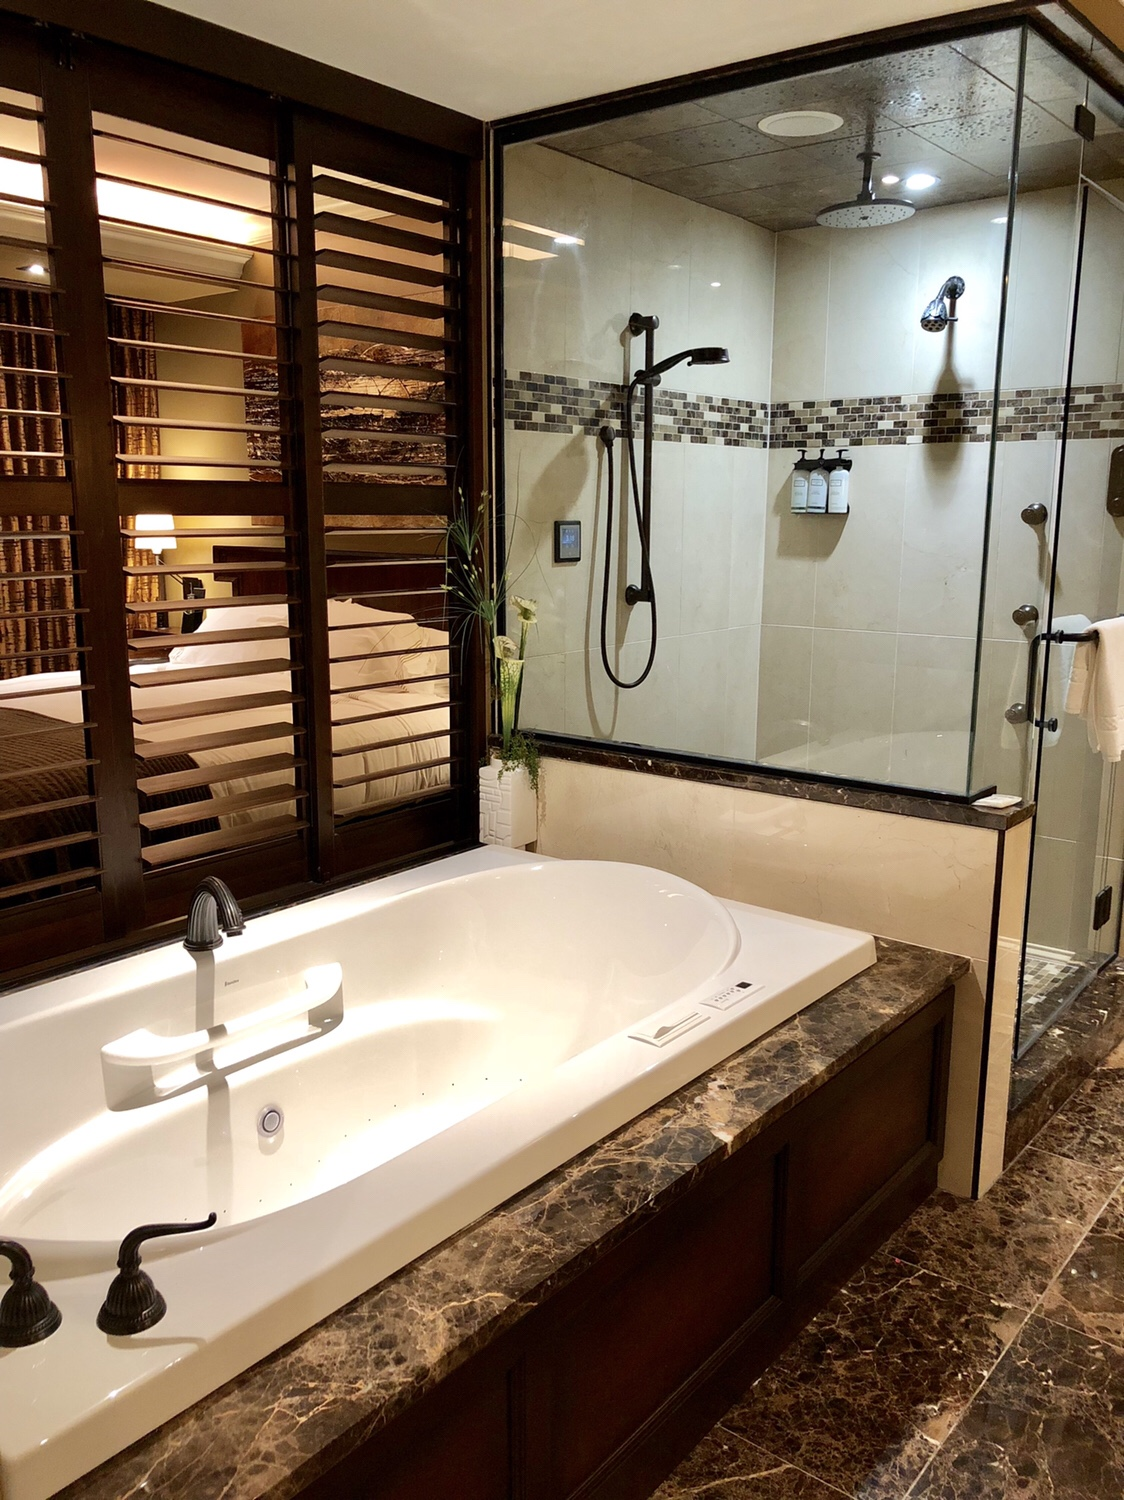 Bathrooms are outfitted with high tech features at the Curtiss Hotel. #curtisshotel #buffalostaycation #westernny #girlsweekendbuffalo #buffalony